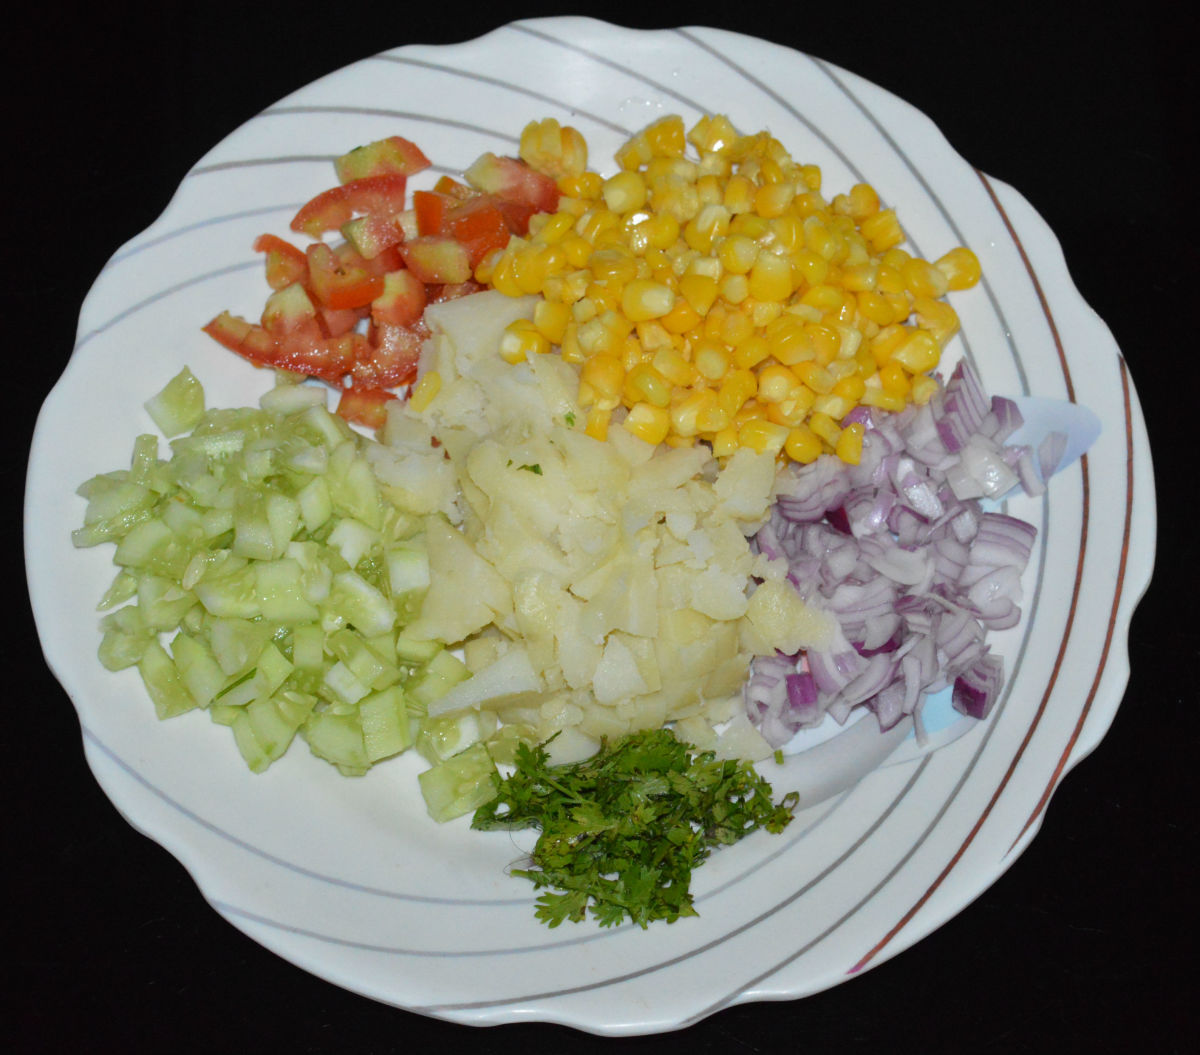 Step 1: Prepare the veggies as per instructions for making taco stuffing.